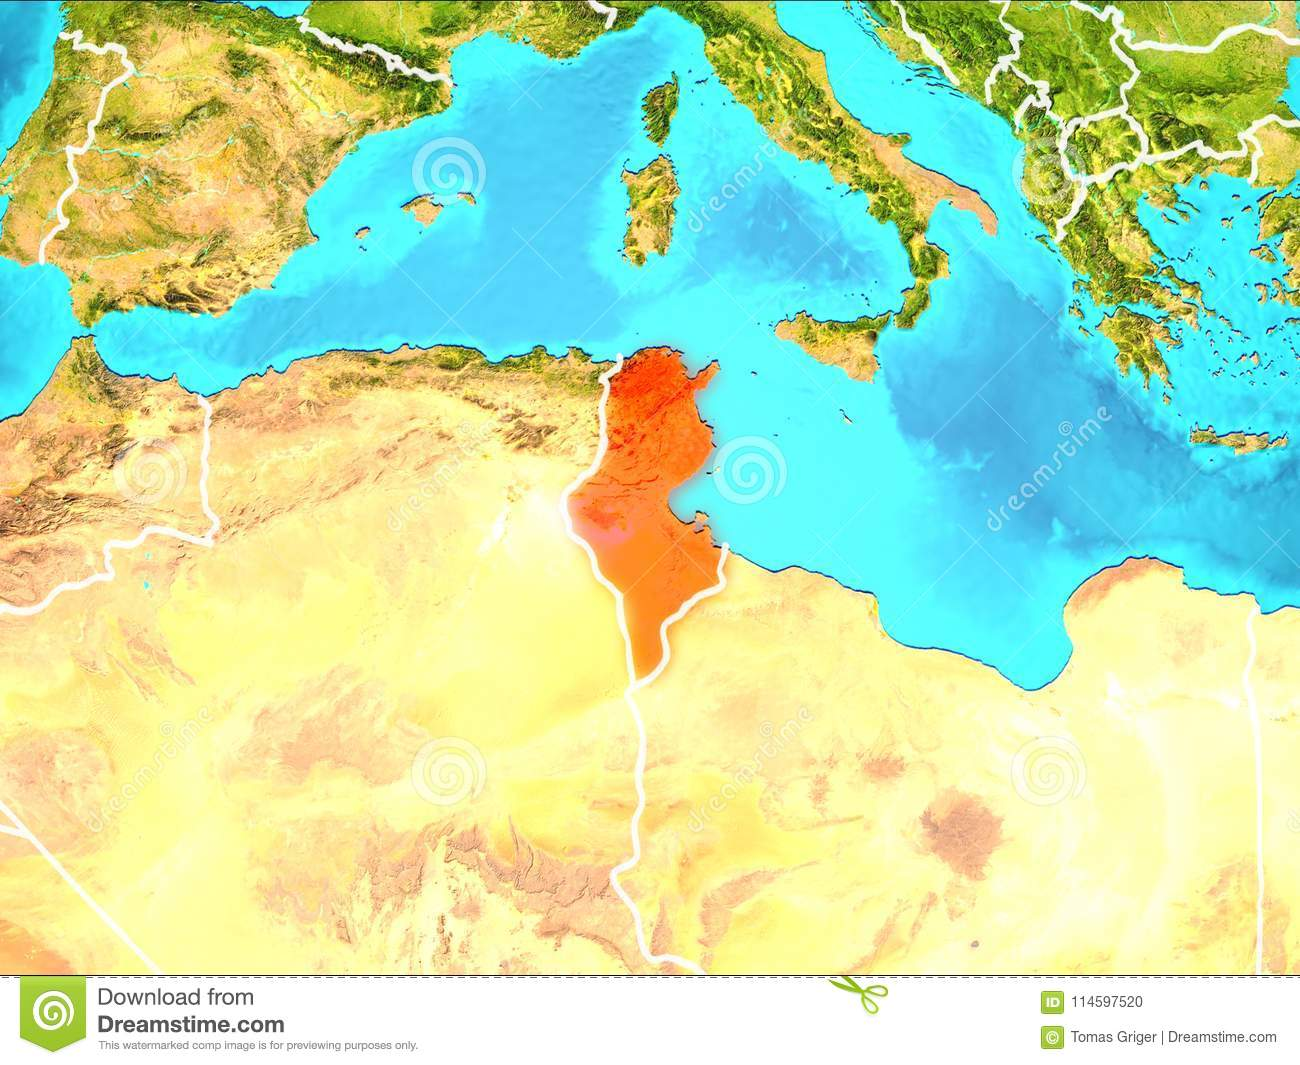 Picture of: Map Of Tunisia Stock Illustration Illustration Of Political 114597520